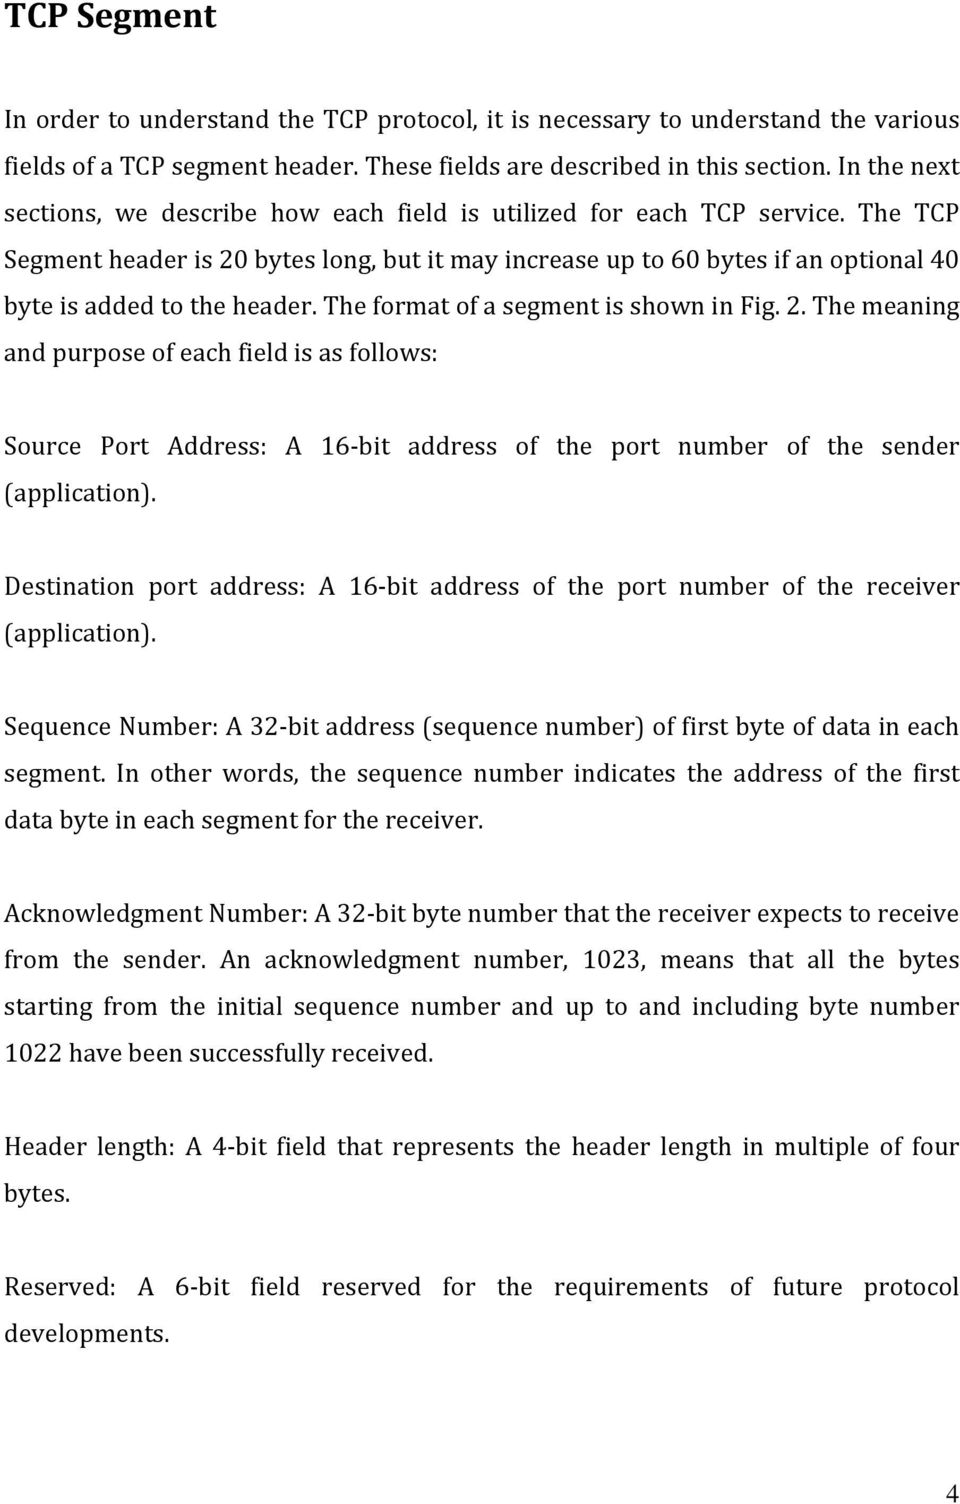 The format of a segment is shown in Fig.. The meaning and purpose of each field is as follows: Source Port Address: A 16 bit address of the port number of the sender (application).